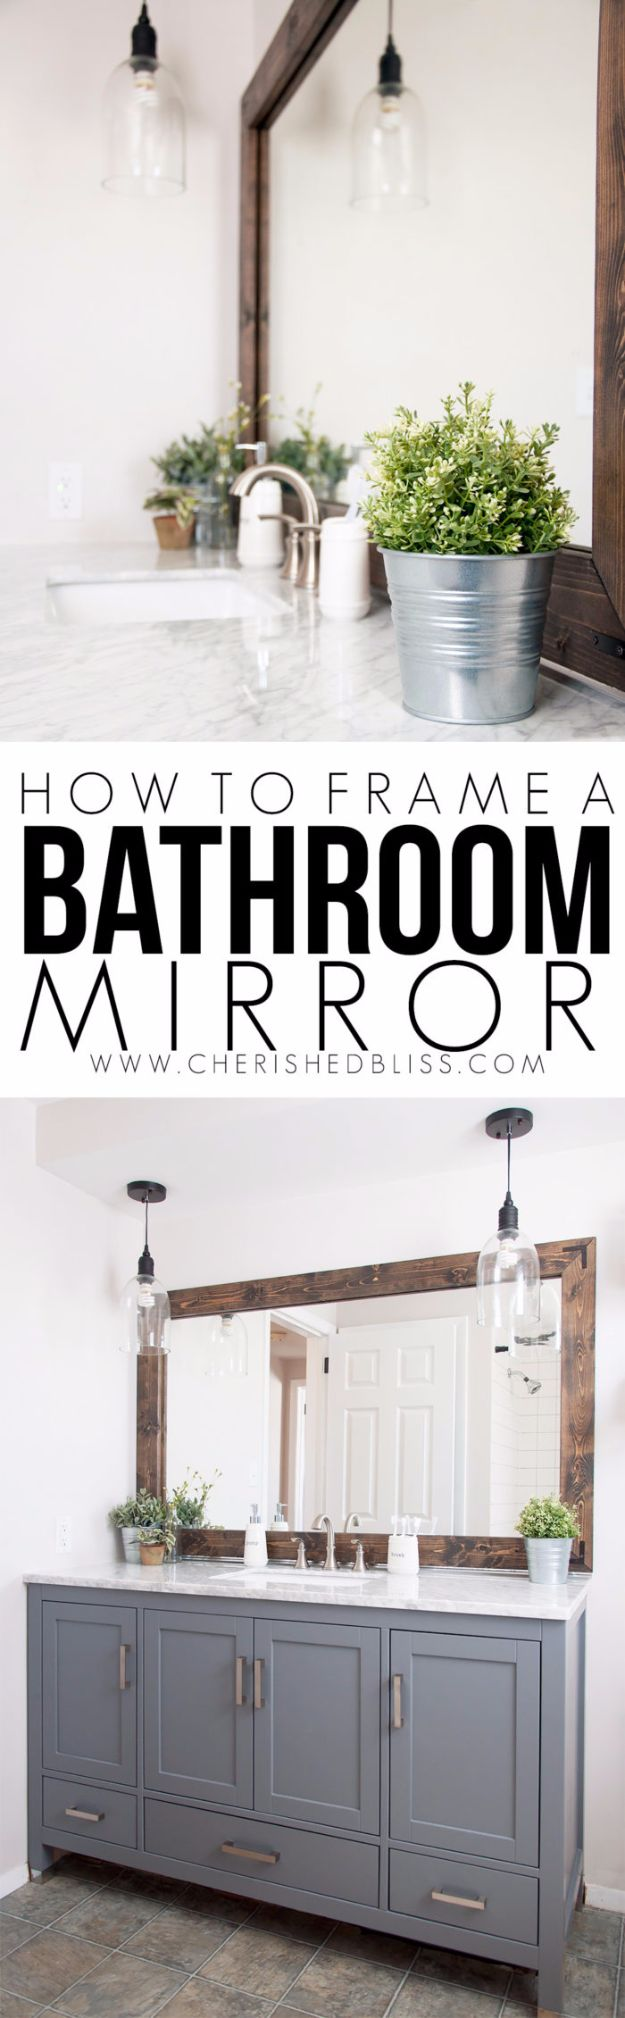 DIY Remodeling Hacks - Frame a Bathroom Mirror - Quick and Easy Home Repair Tips and Tricks - Cool Hacks for DIY Home Improvement Ideas - Cheap Ways To Fix Bathroom, Bedroom, Kitchen, Outdoor, Living Room and Lighting - Creative Renovation on A Budget - DIY Projects and Crafts by DIY JOY #remodeling #homeimprovement #diy #hacks